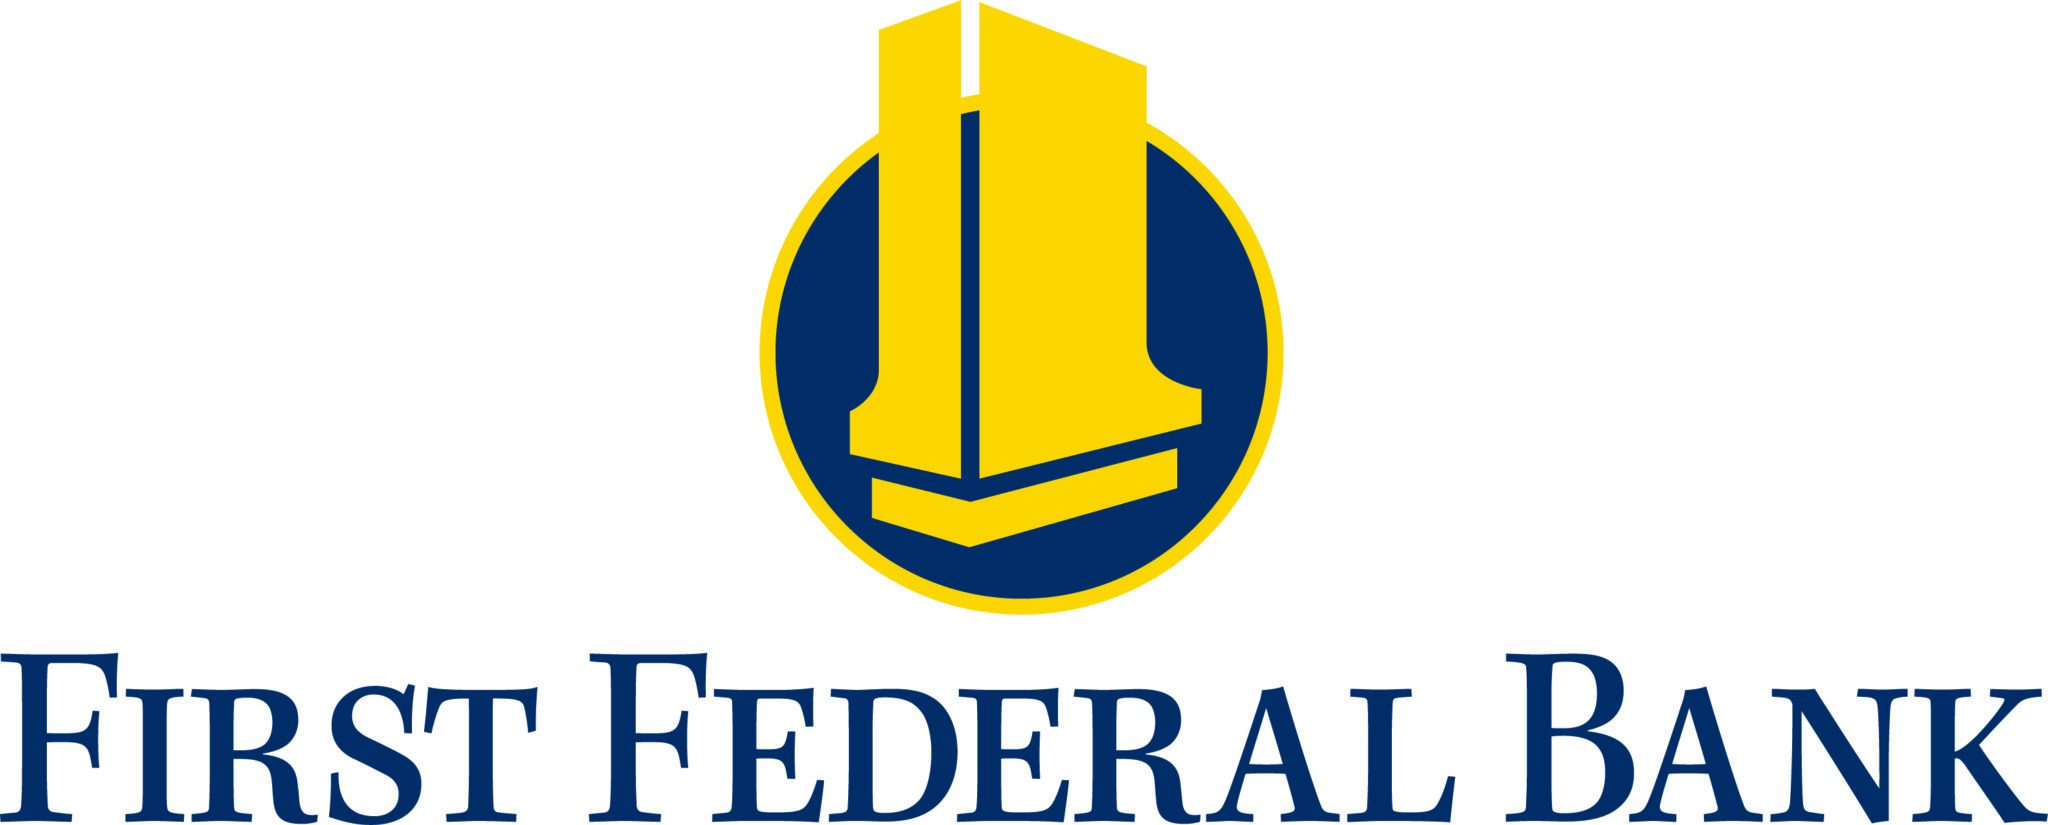 First Federal Bank Logo